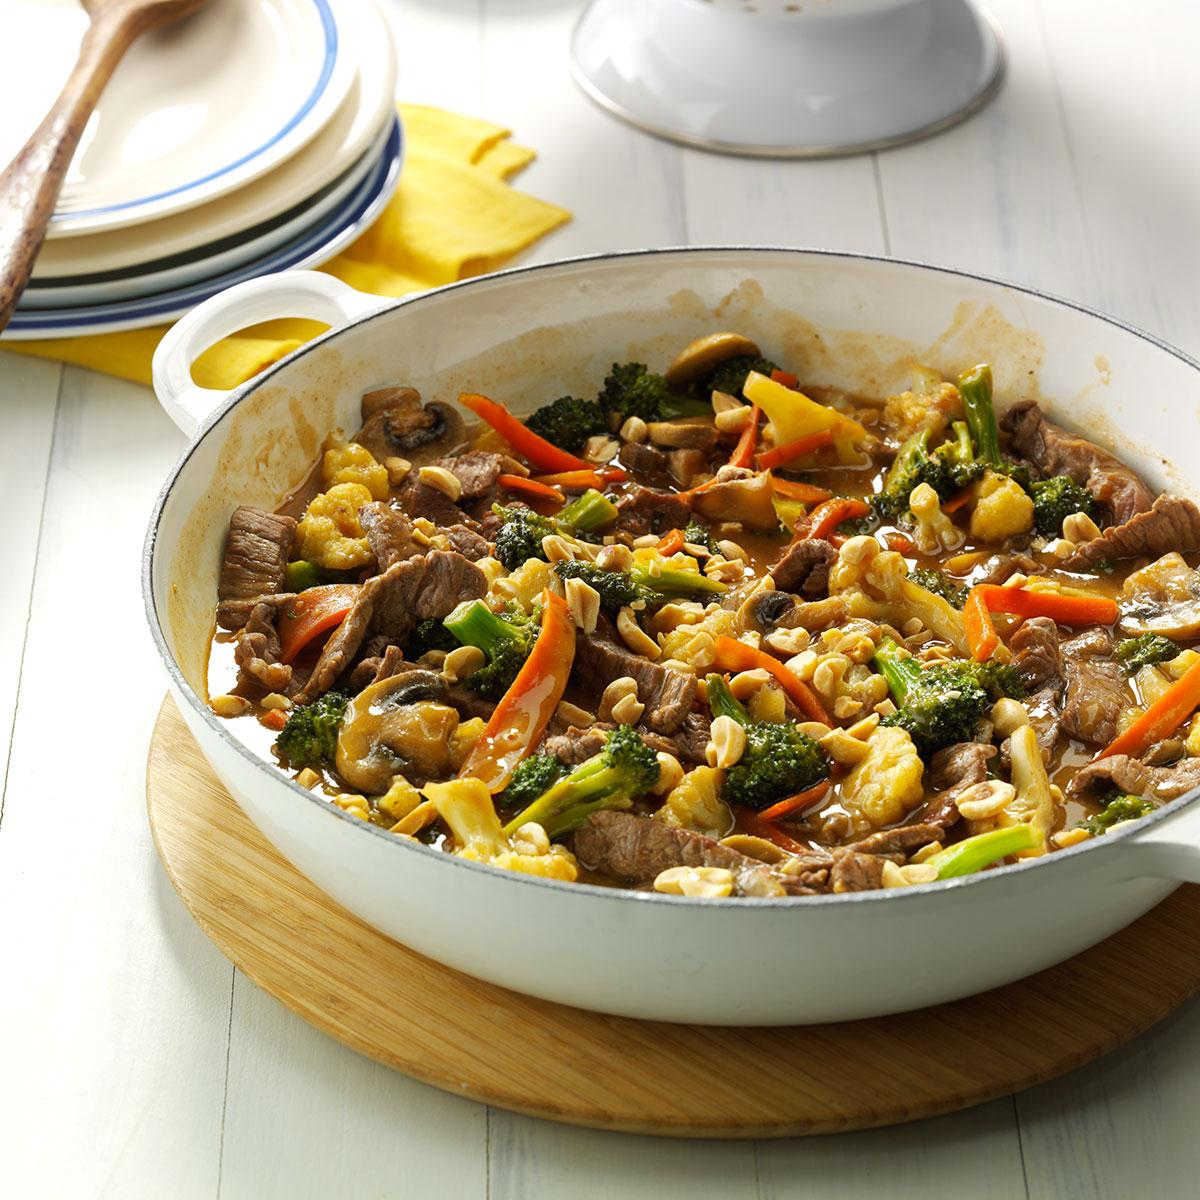 Thai Beef Stir Fry Recipe How To Make It Taste Of Home